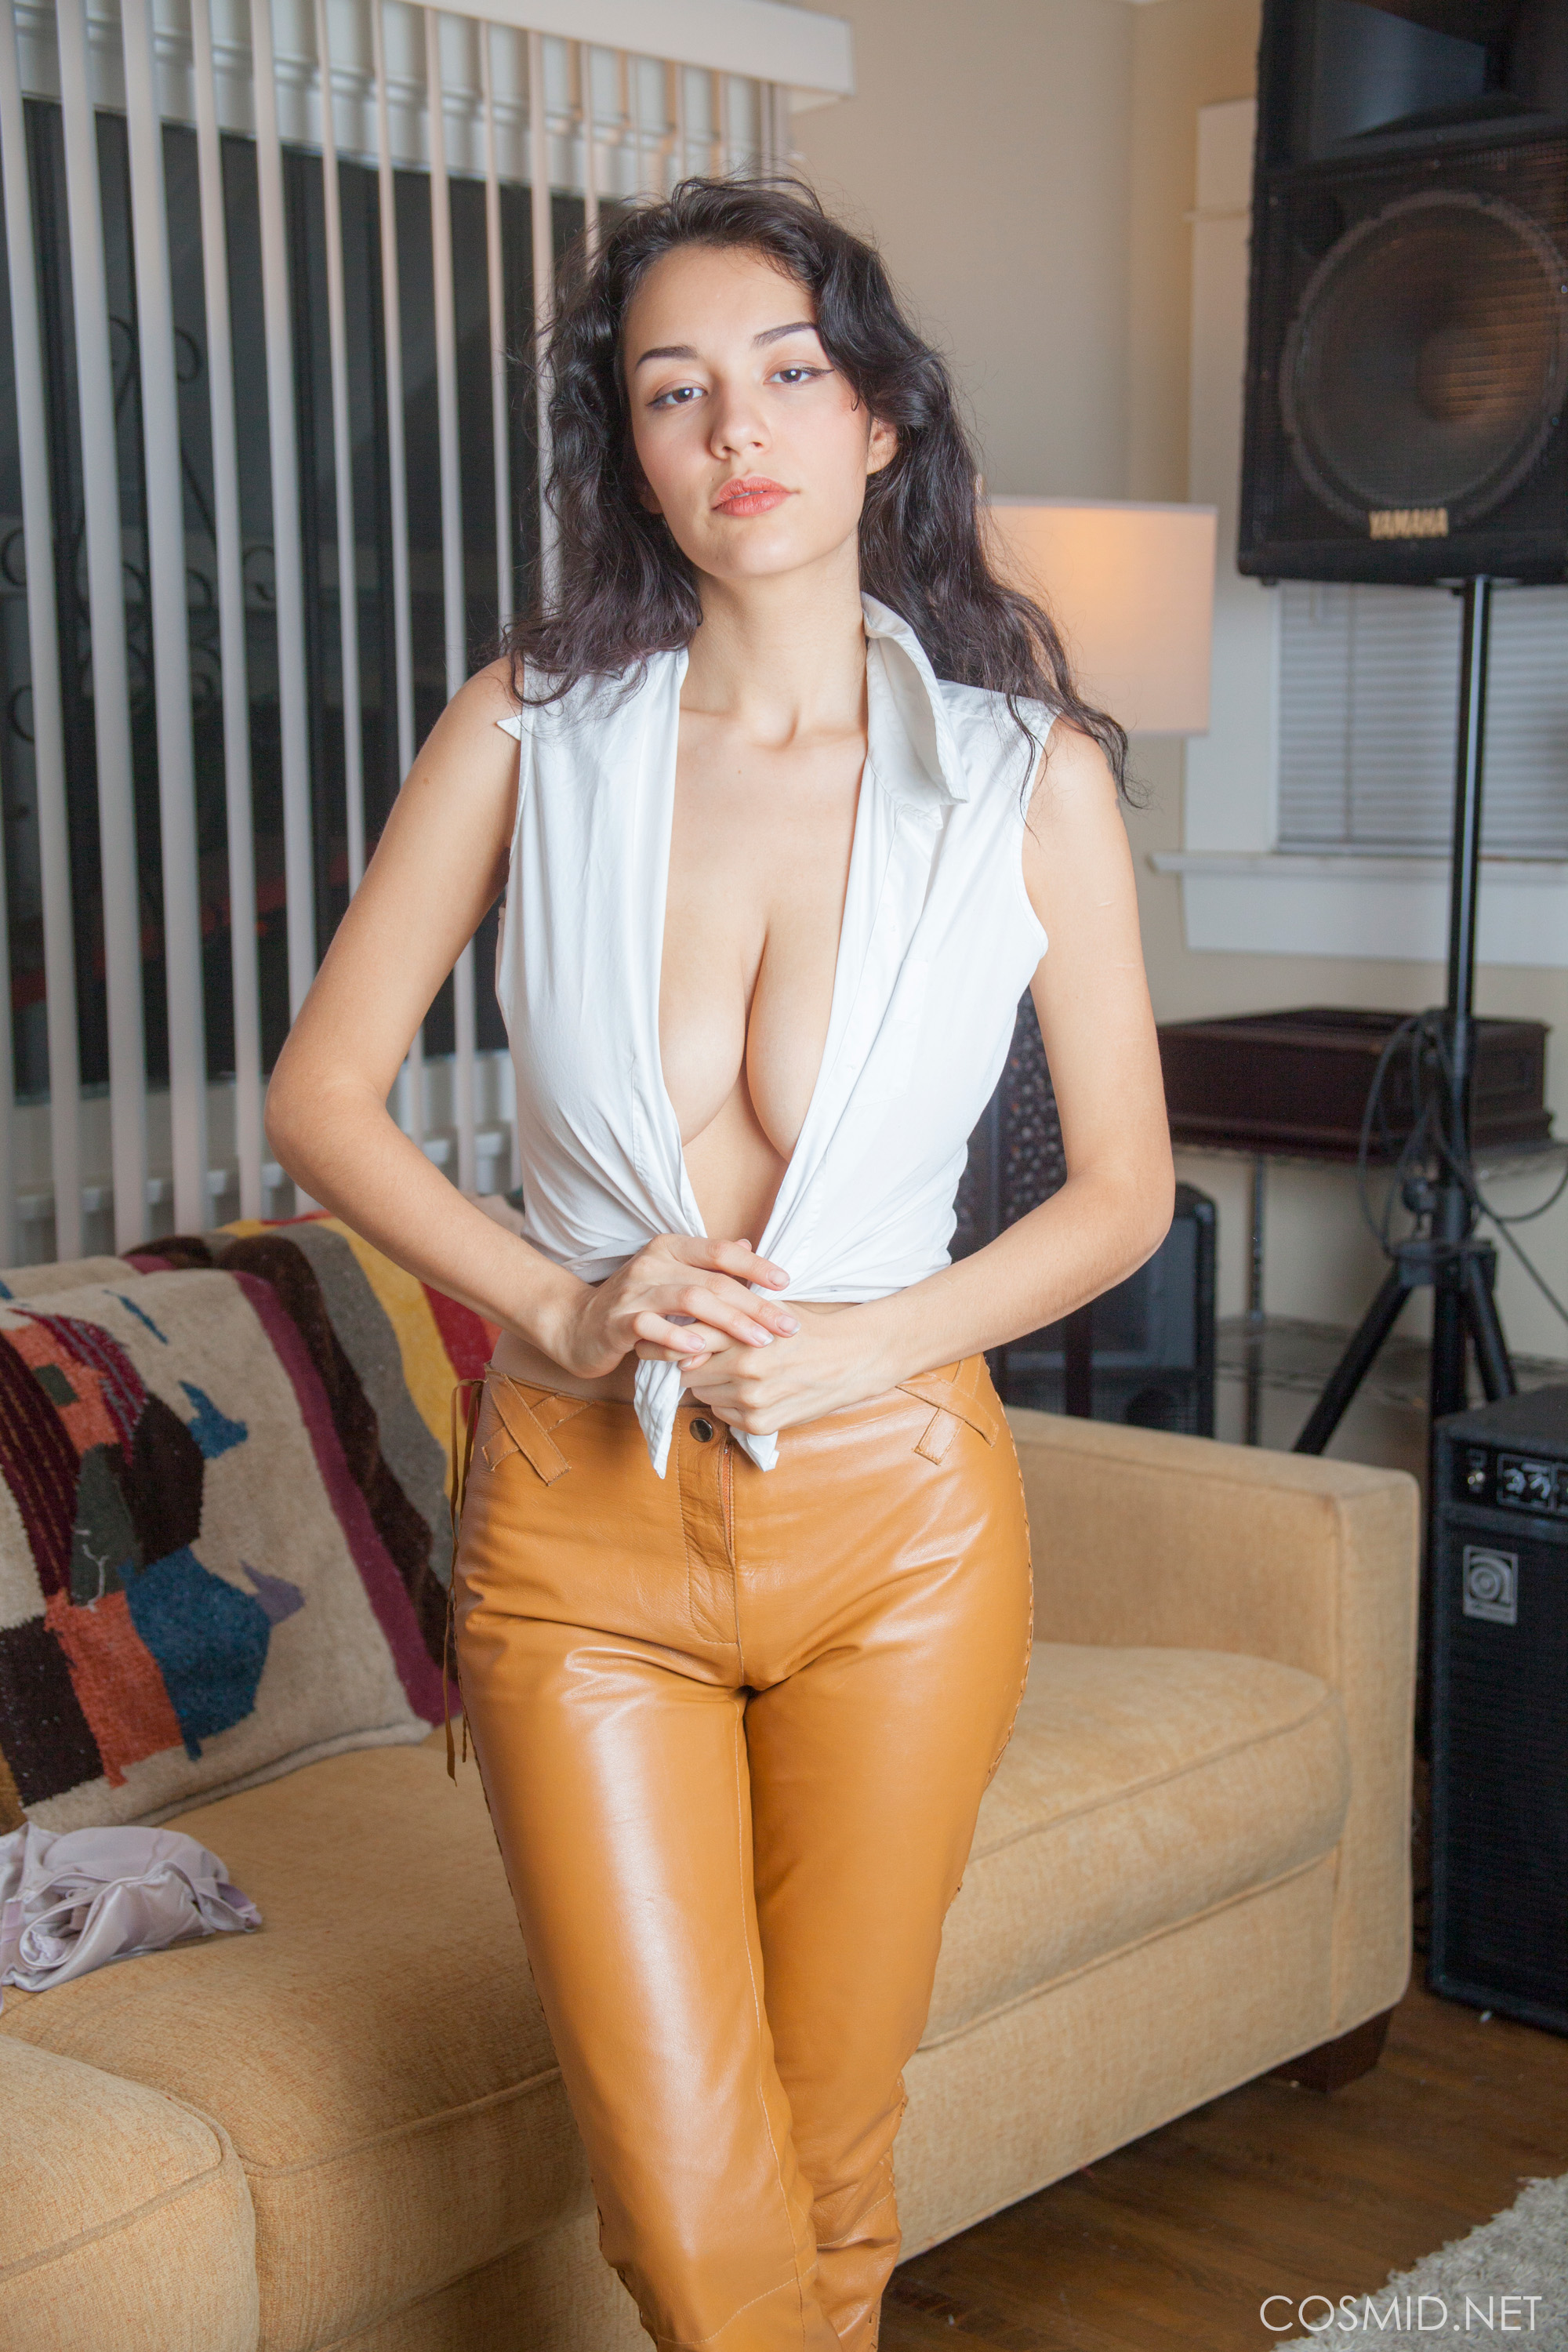 new cosmid model in wonderful leather trousers modelling her marvelous tits #10